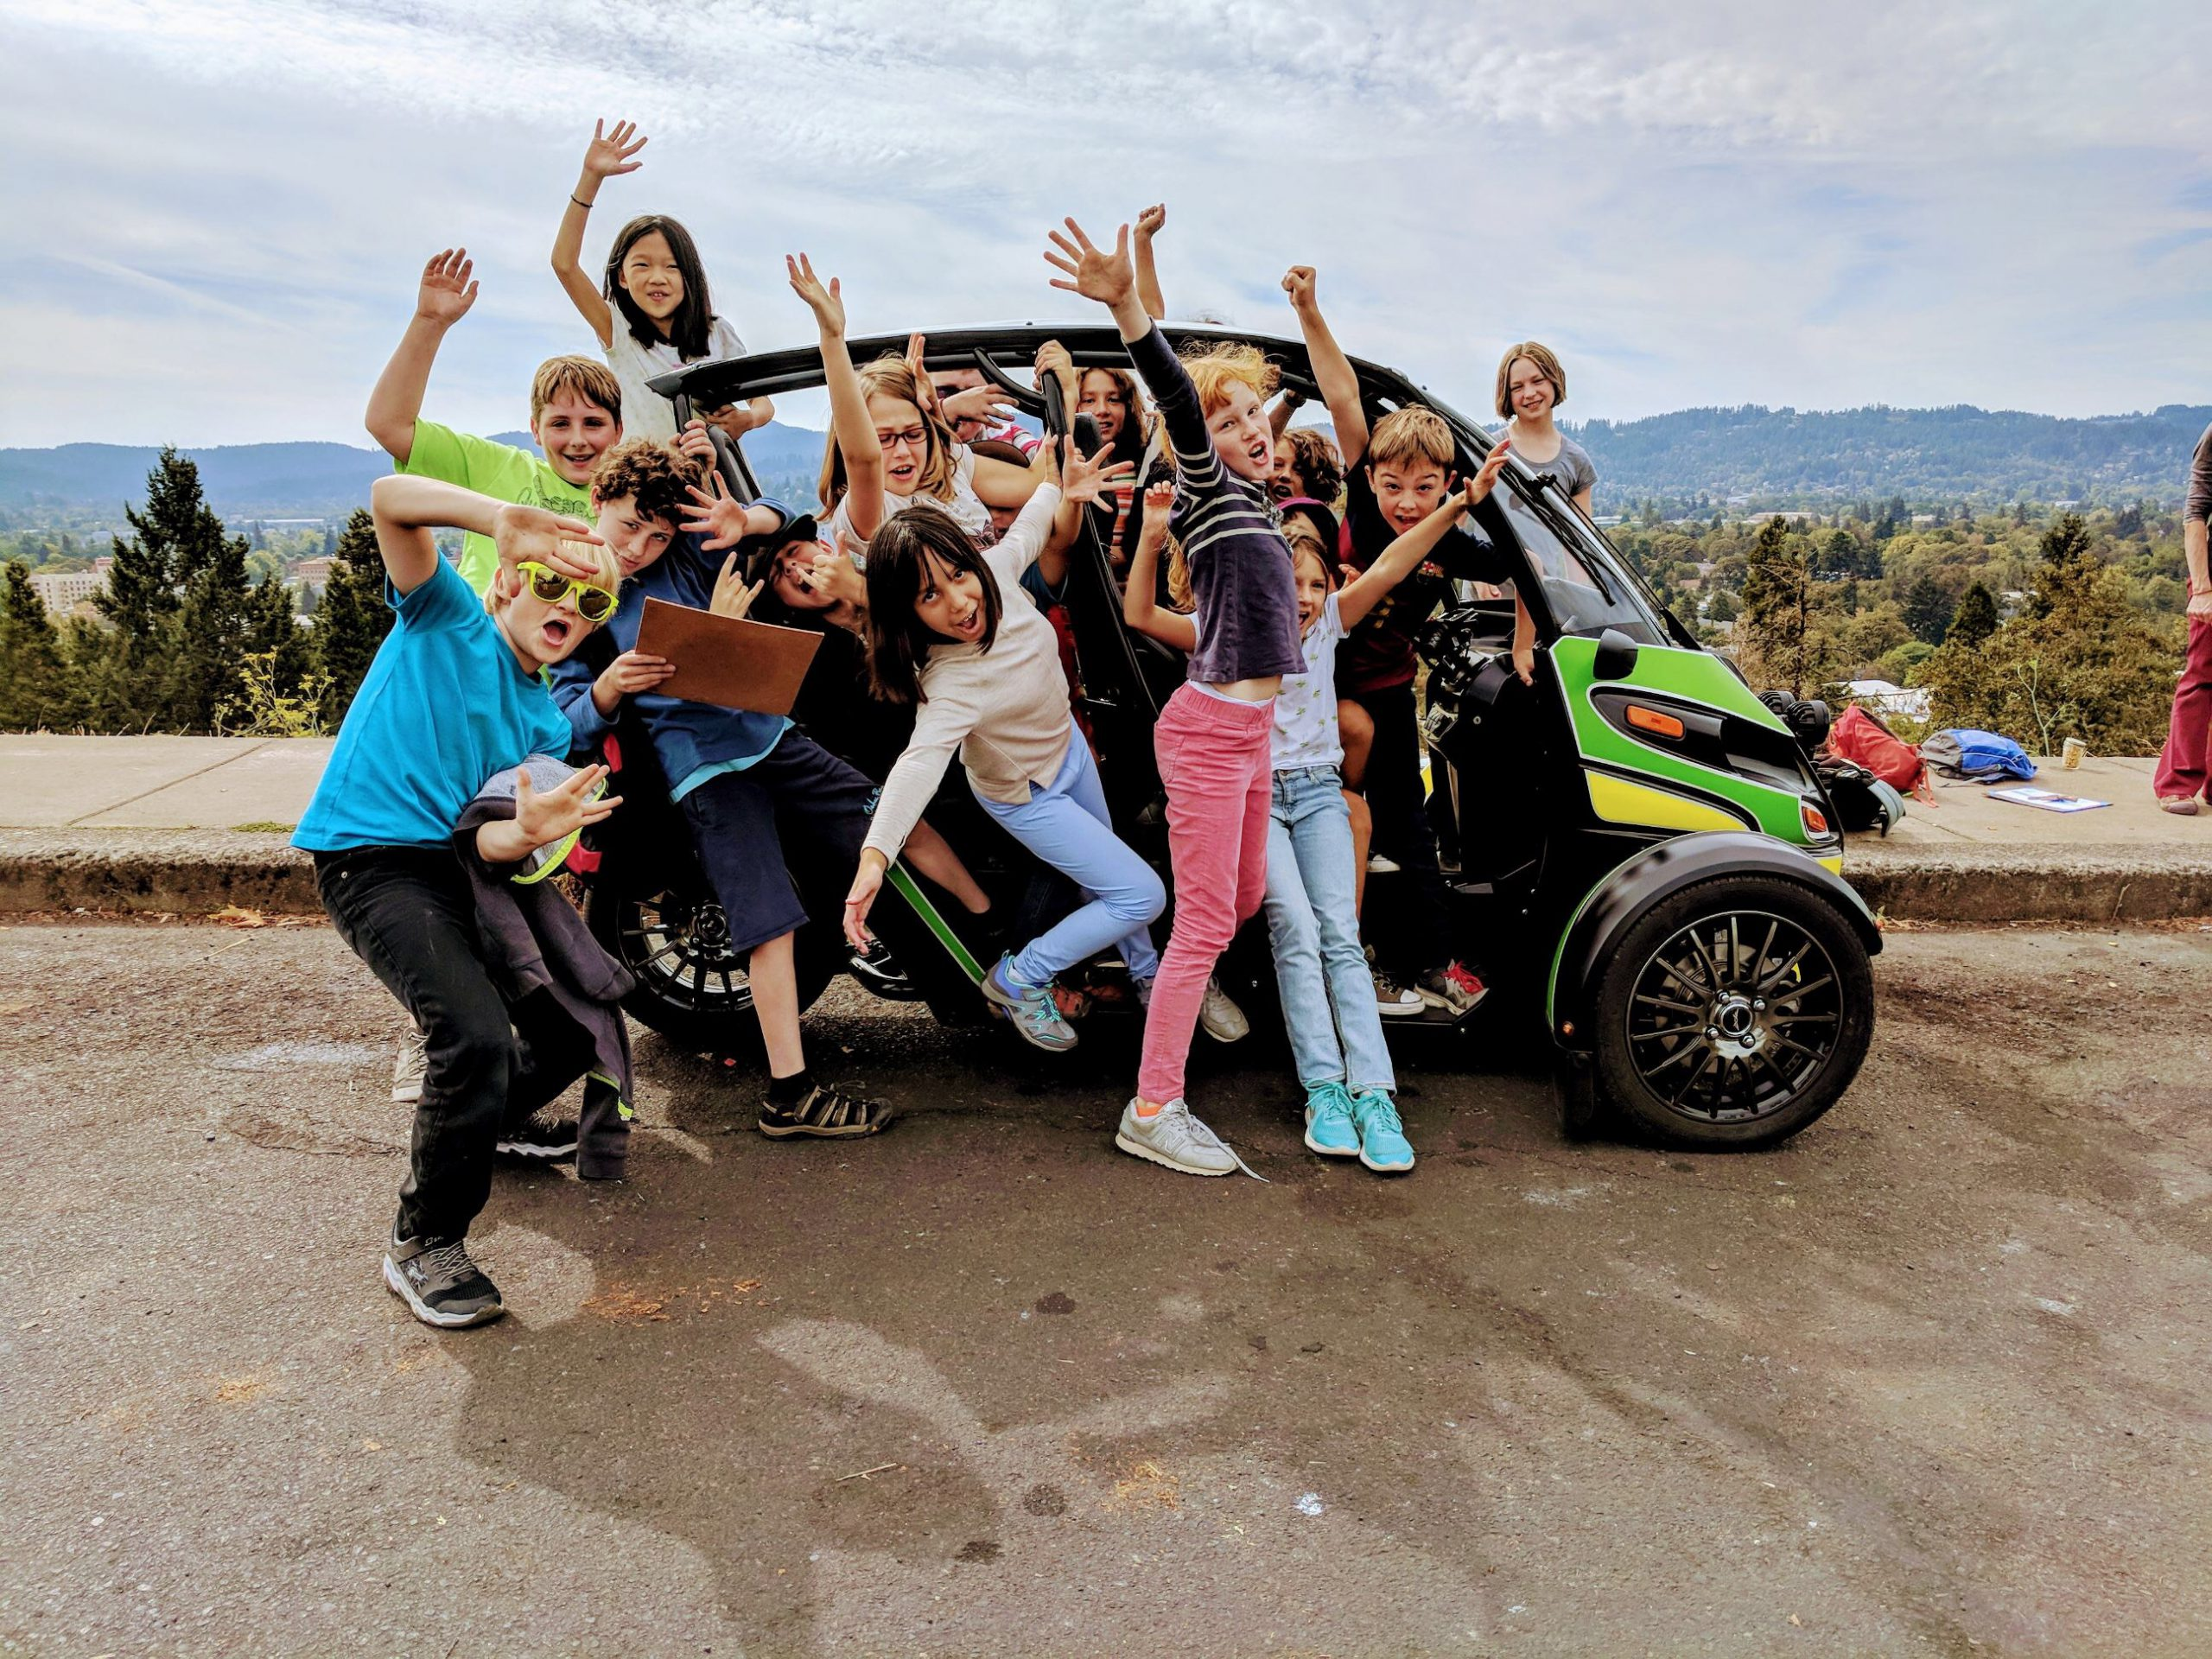 Happy New Year from Arcimoto!